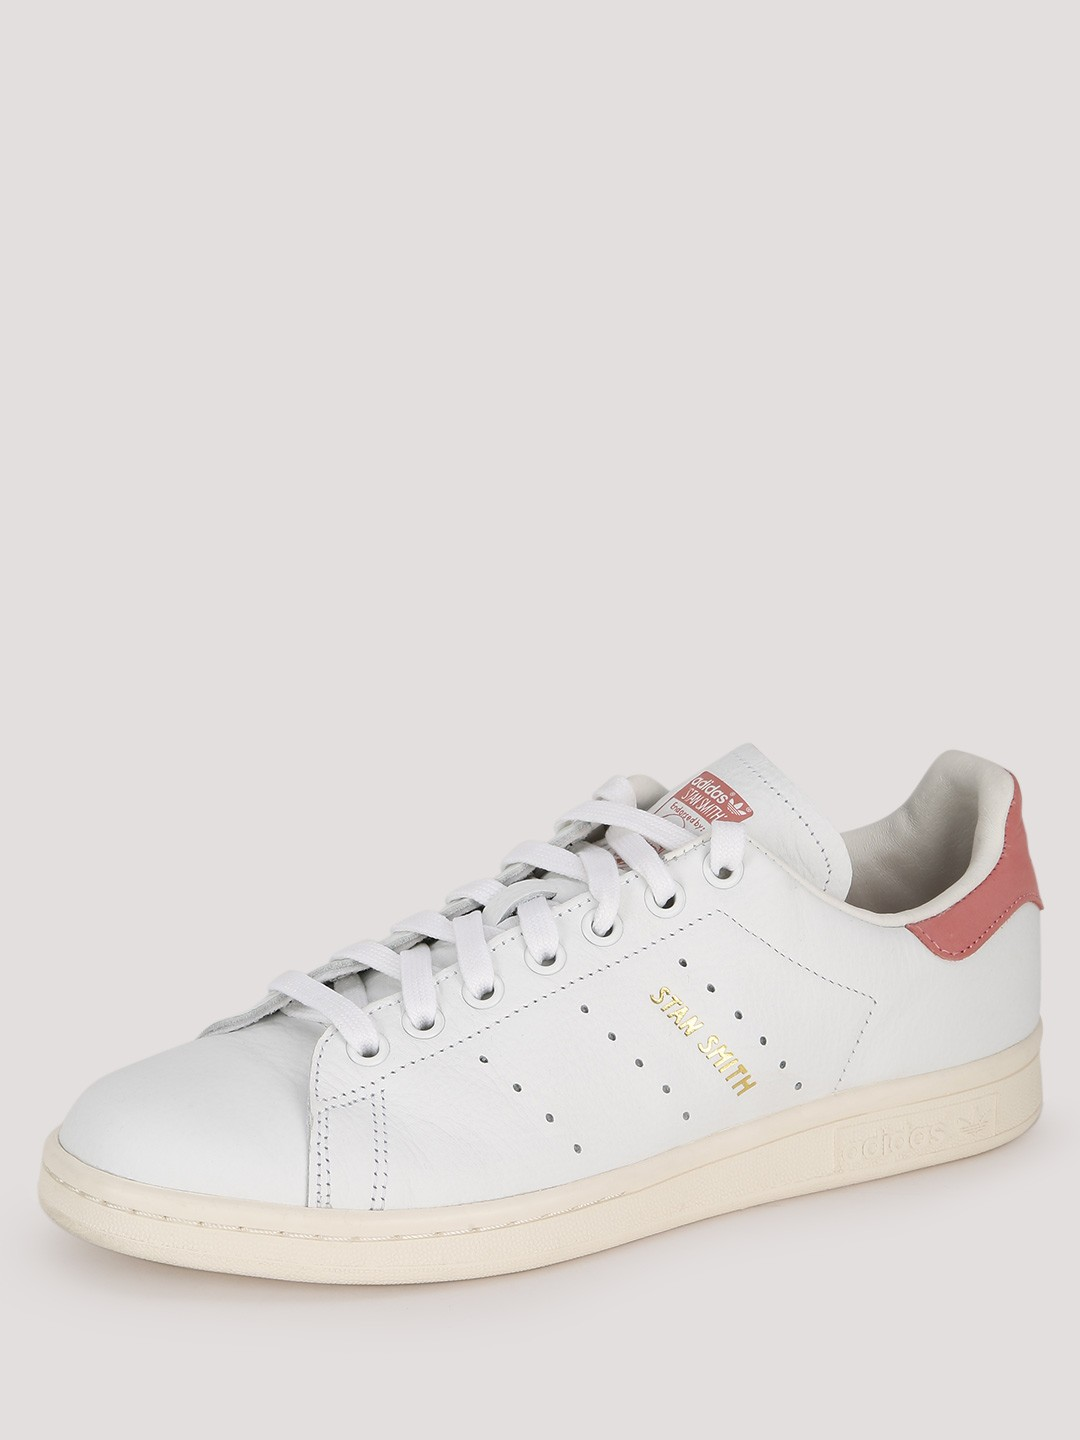 reputable site 439da d65f8 Buy Adidas Originals White/Pink Stan Smith Trainers for ...